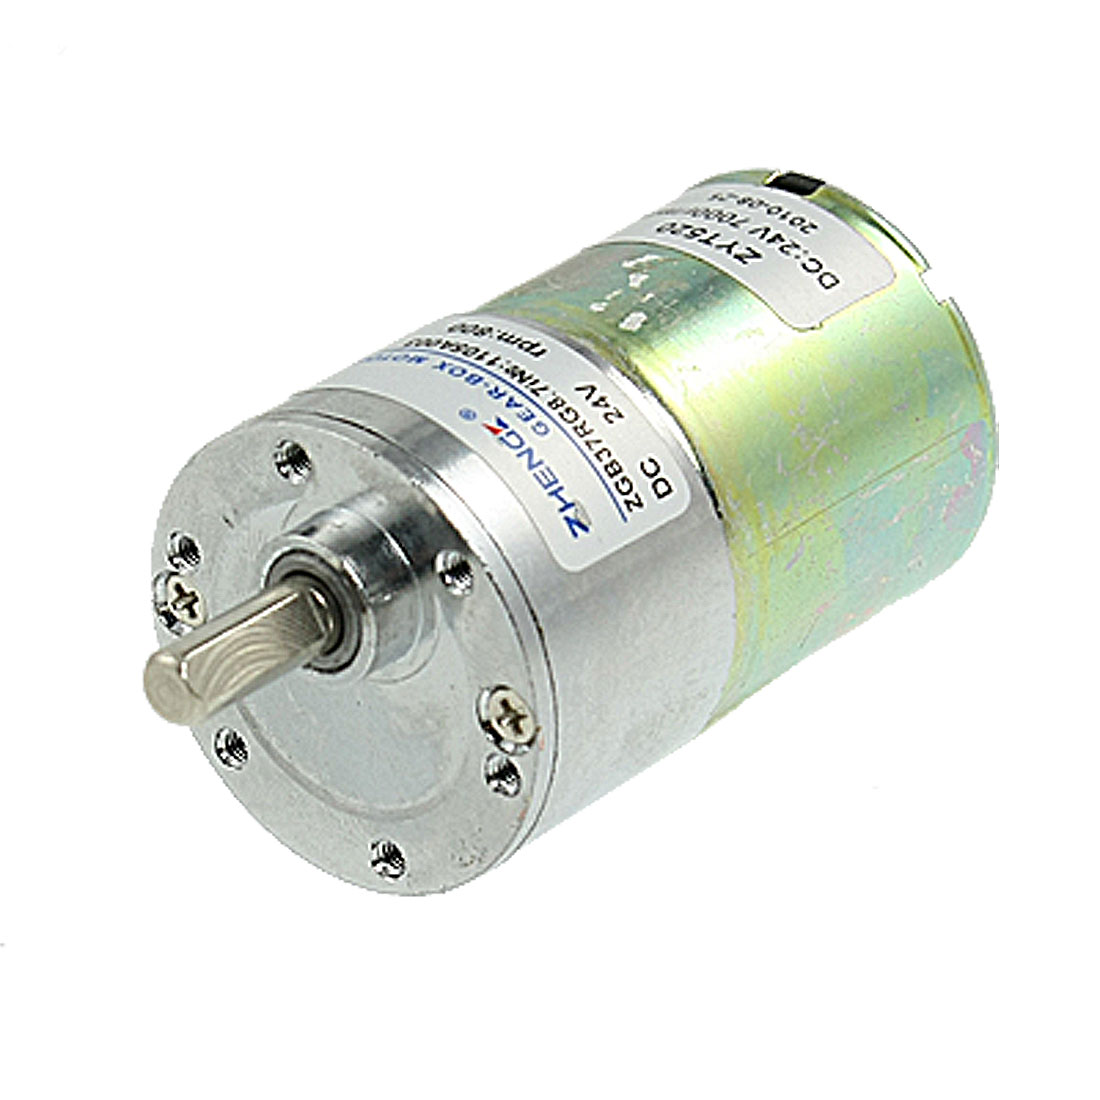 800 RPM DC 24V 6mm Shaft Geared Box Motor for Electrical Machine